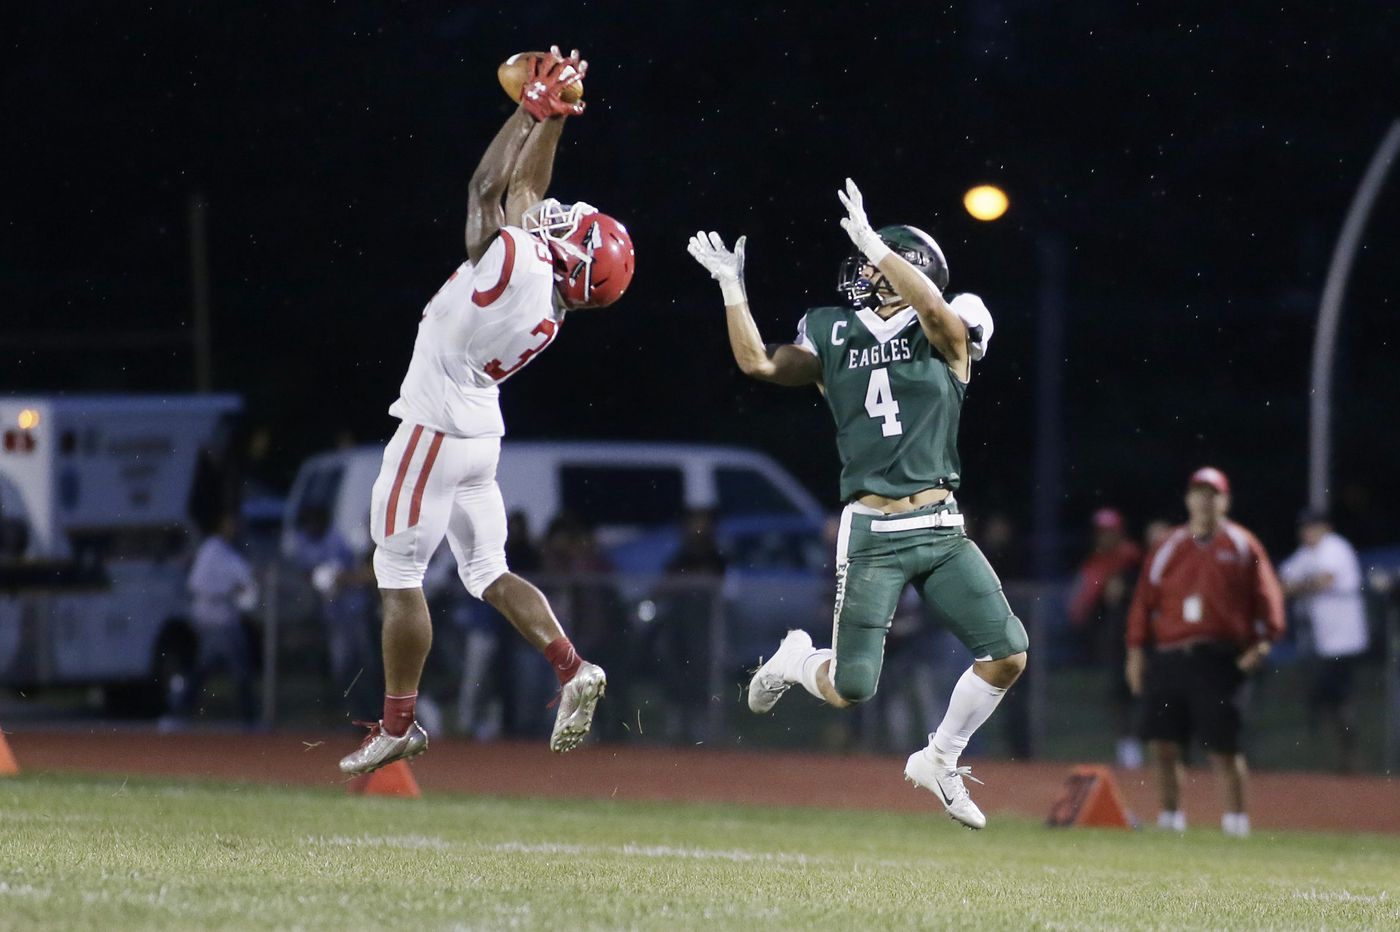 Paulsboro edges West Deptford in latest installment of South Jersey high school football rivalry